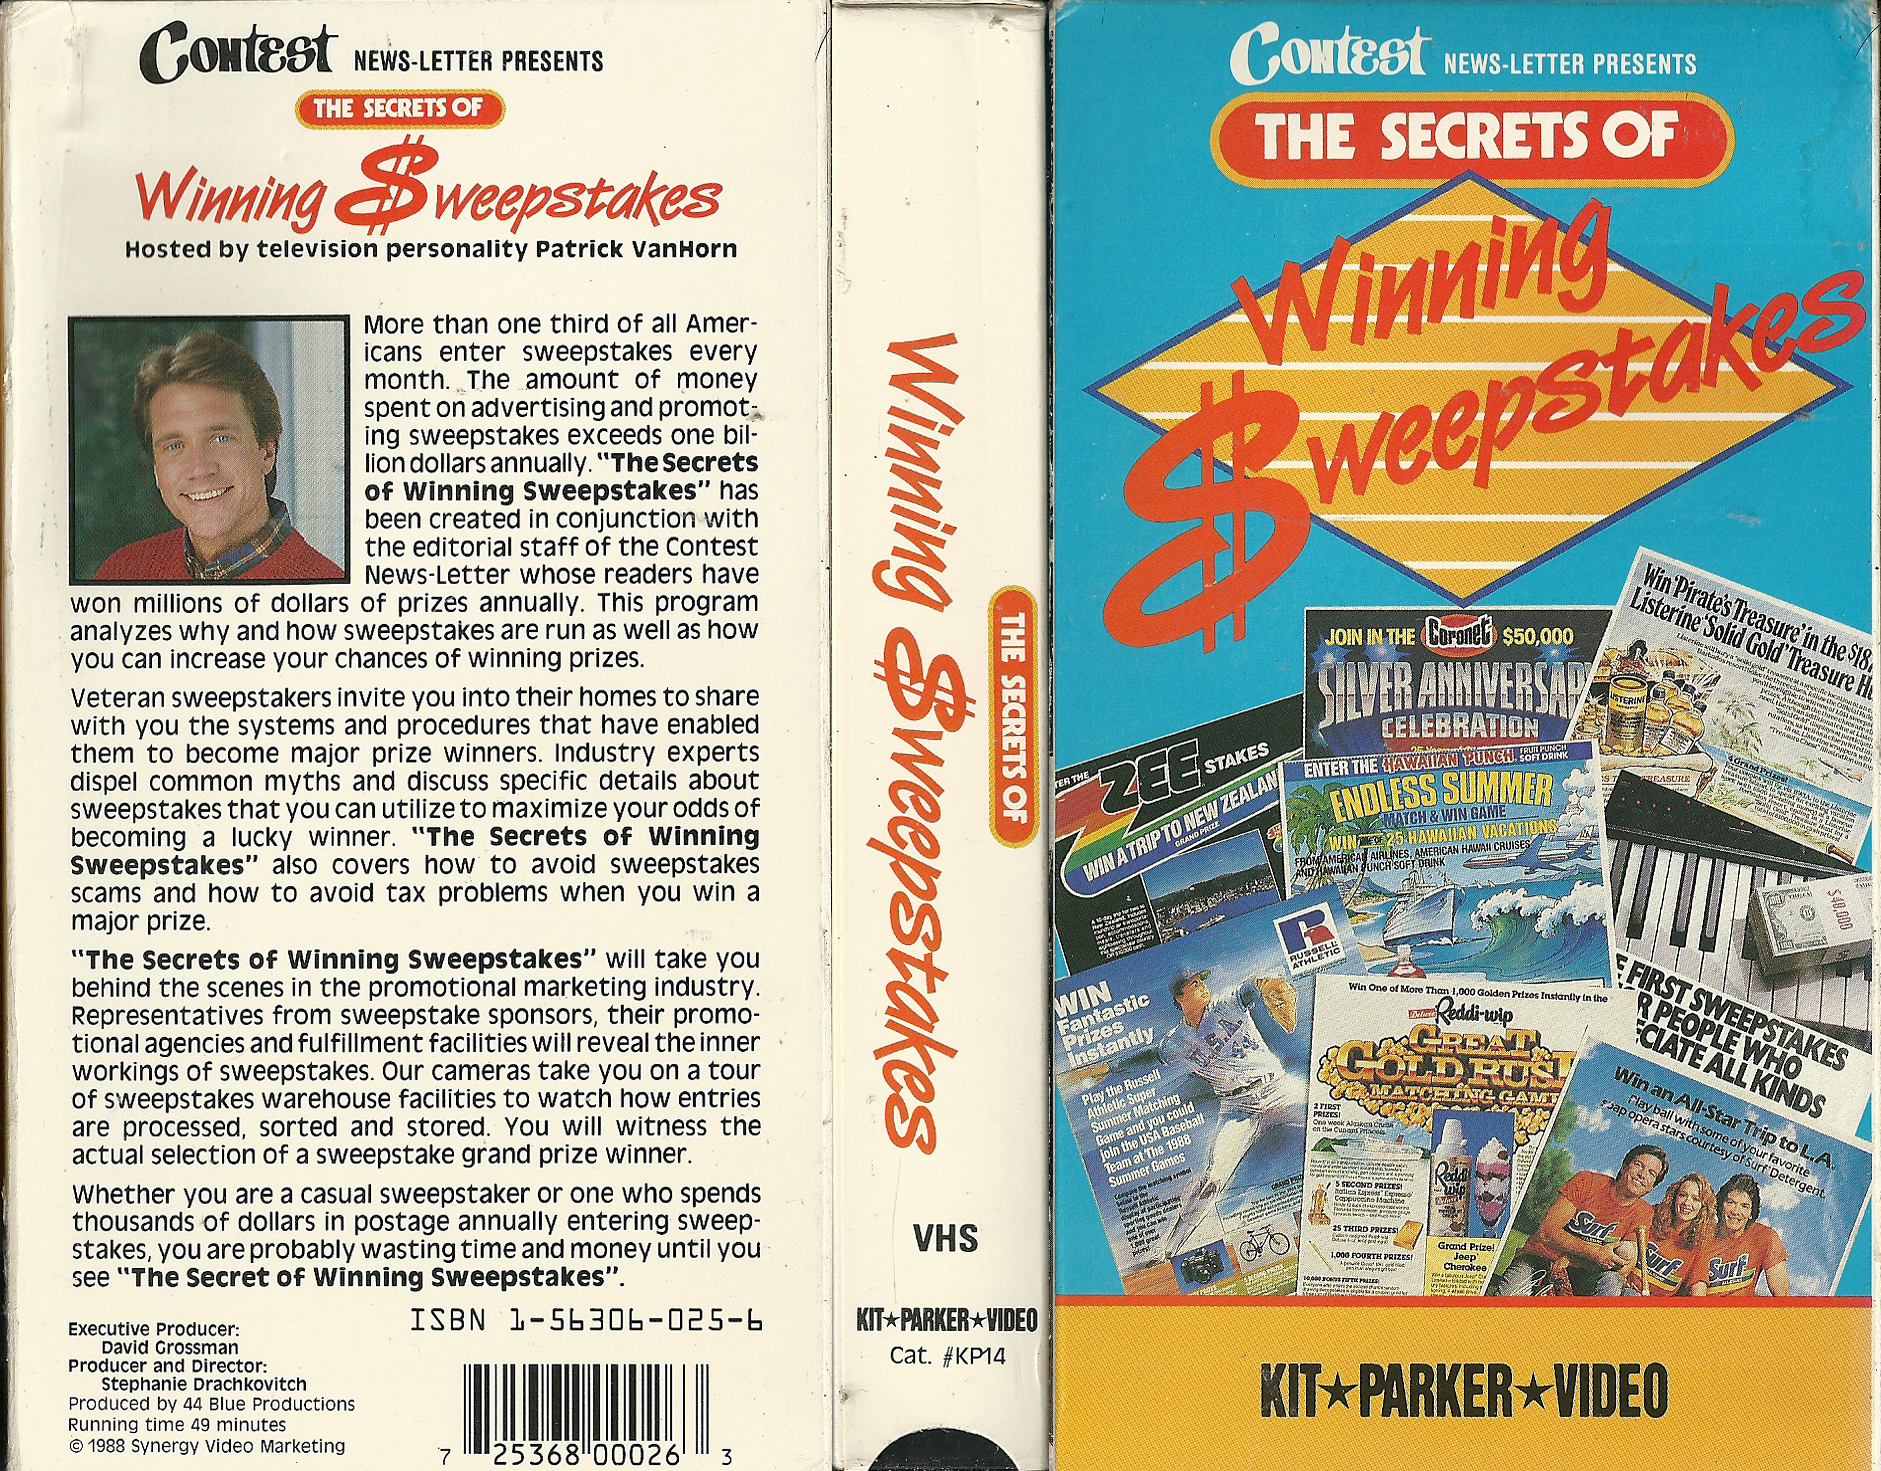 VHS WASTELAND, YOUR HOME FOR HIGH RESOLUTION SCANS OF RARE, STRANGE